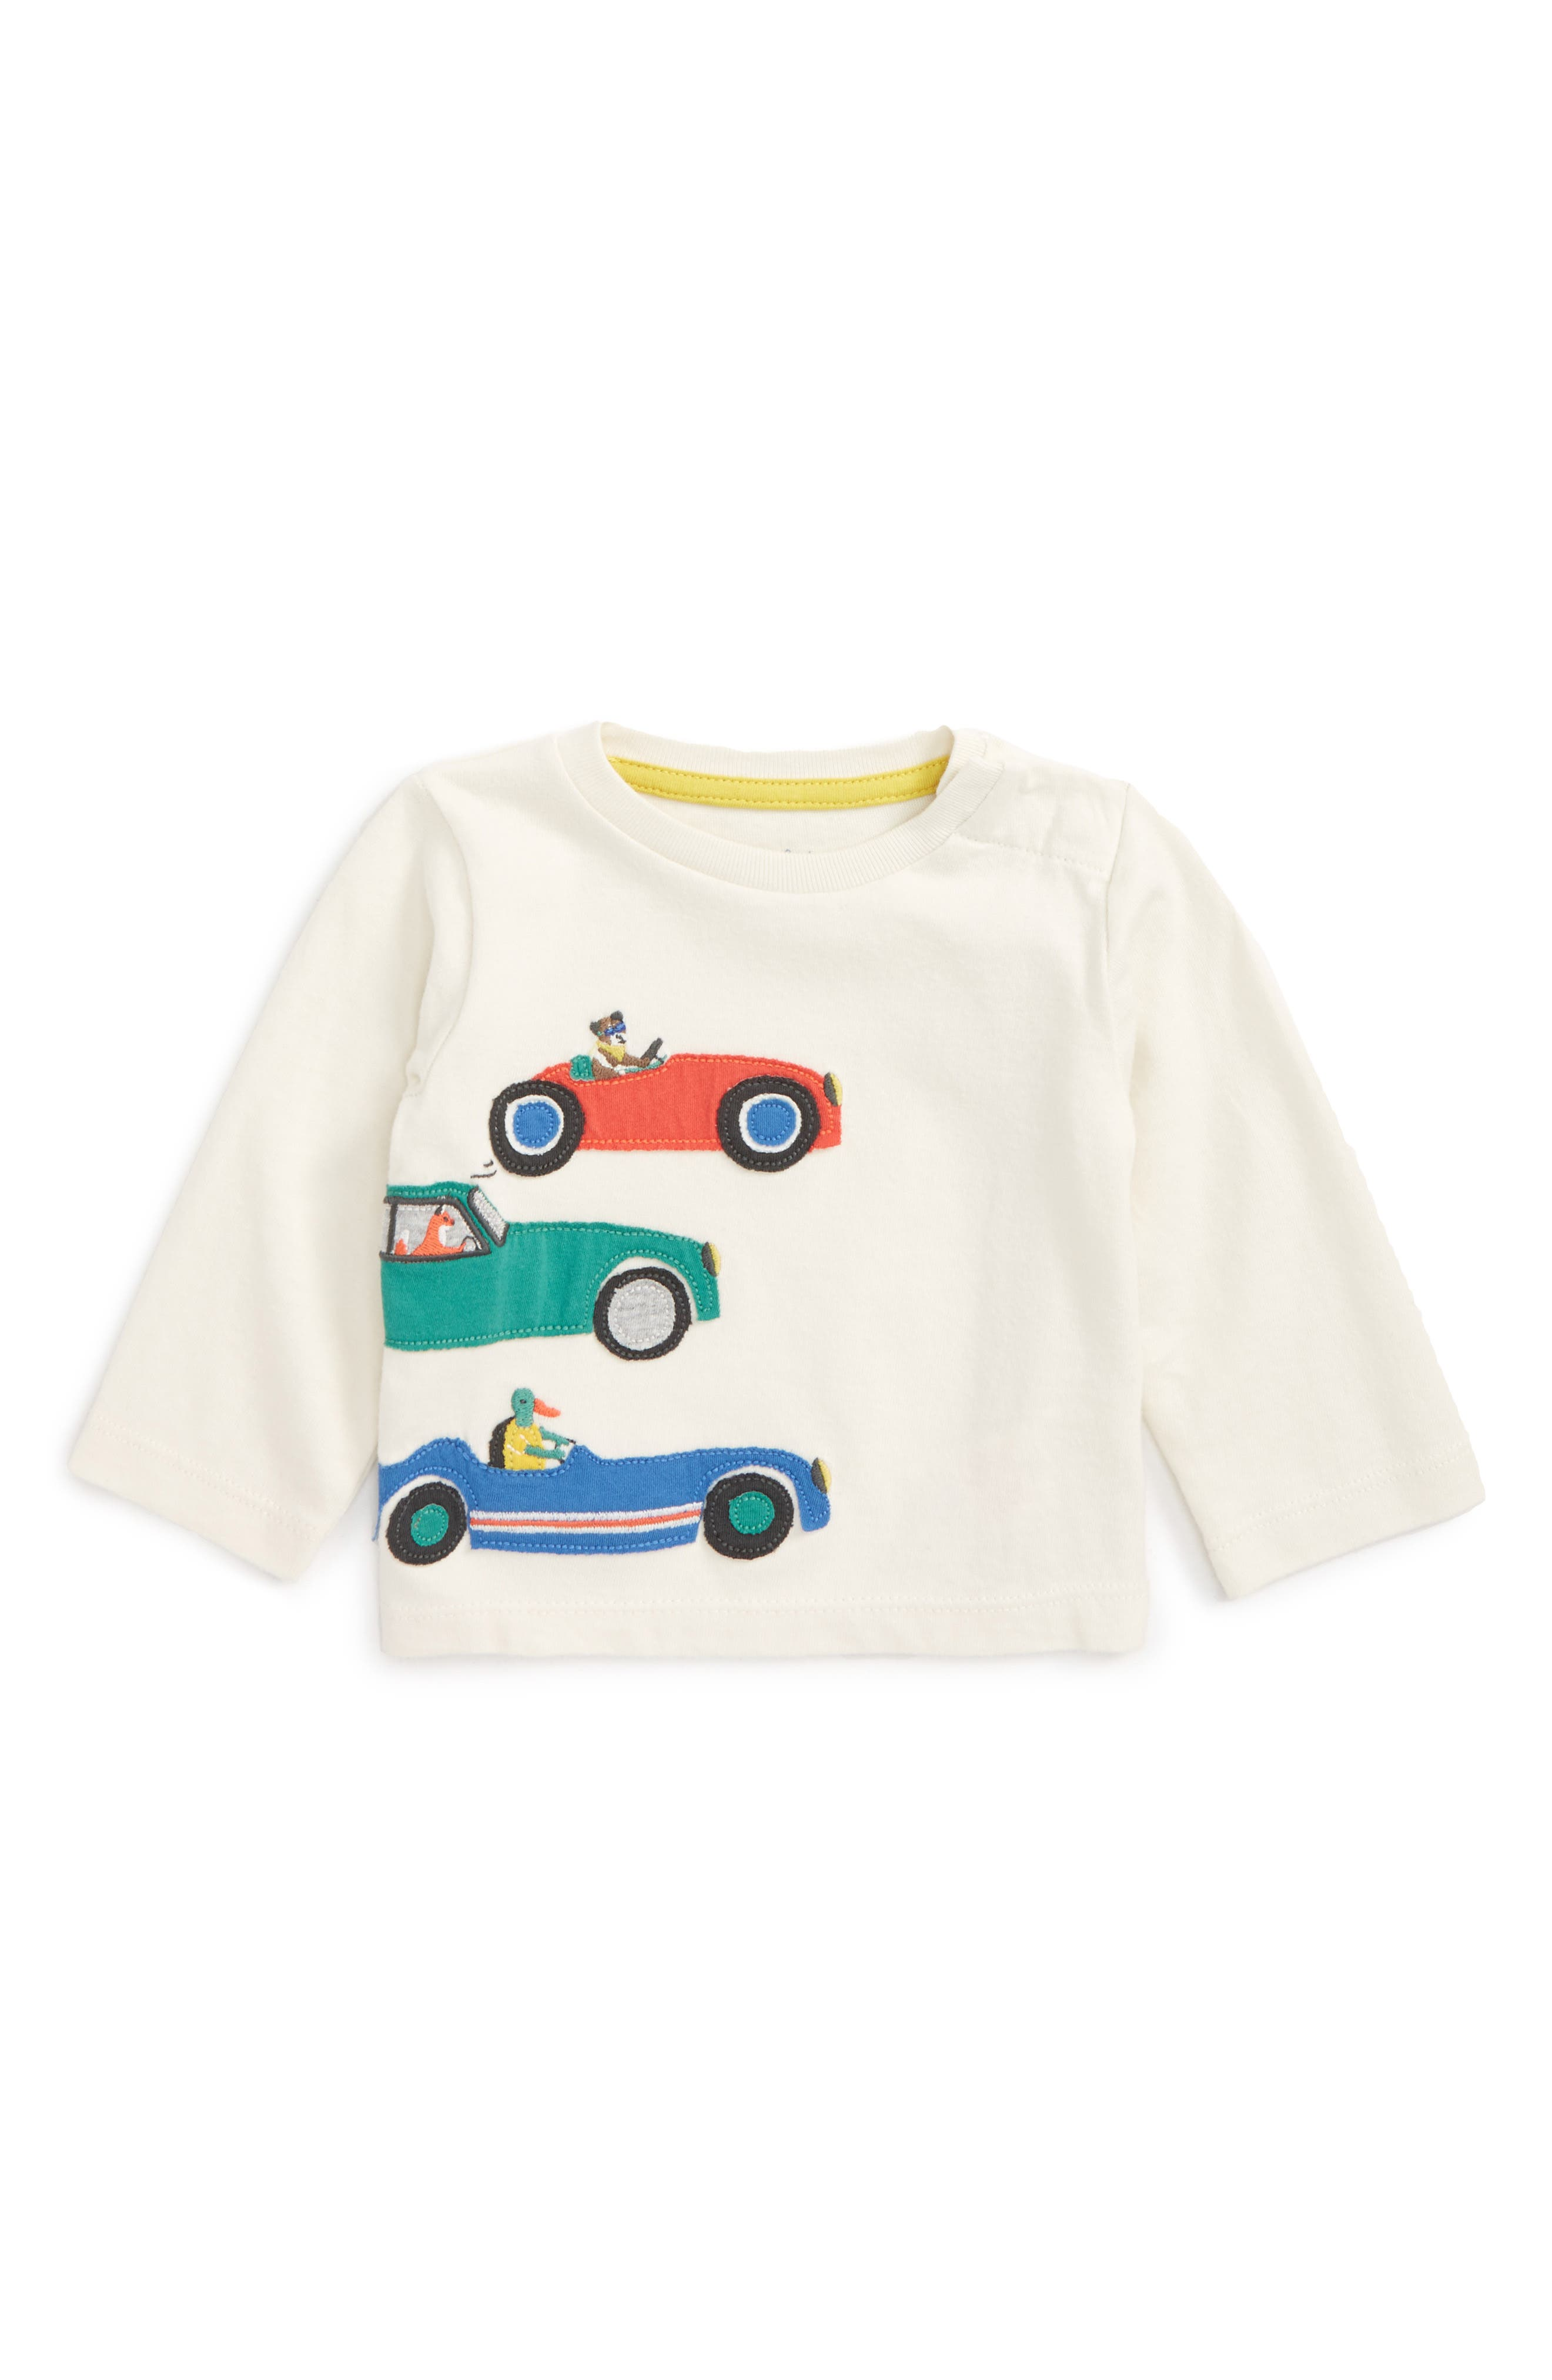 Vehicle Appliqué T-Shirt,                             Main thumbnail 1, color,